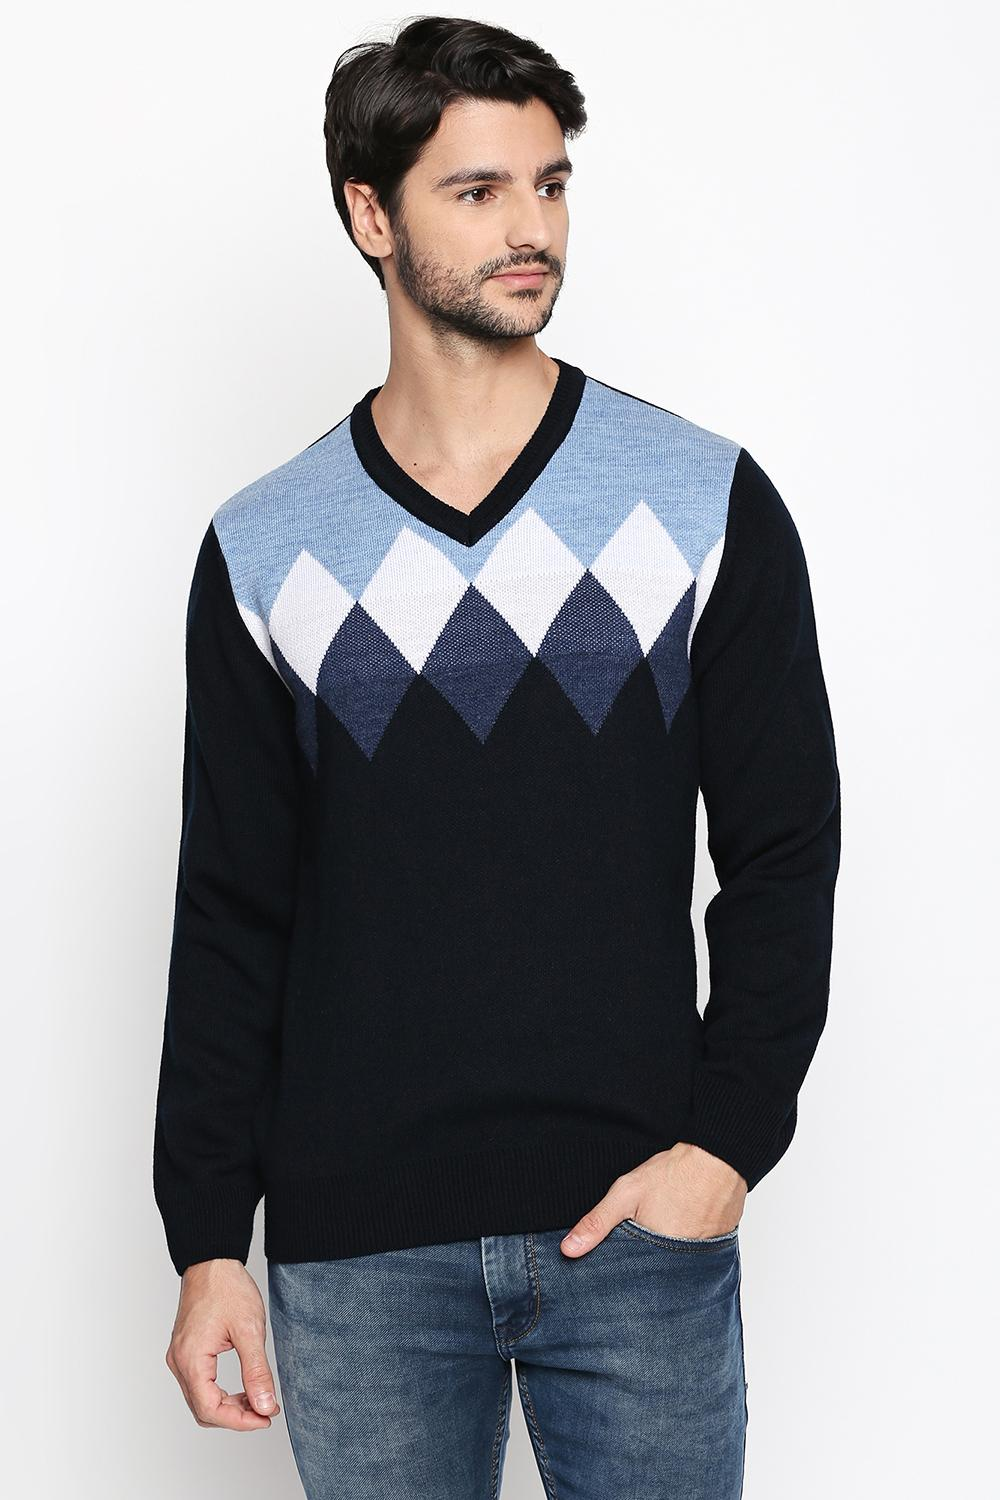 6bbb3ec8 Shop Sweaters for Men Online in India at Pantaloons Online Store